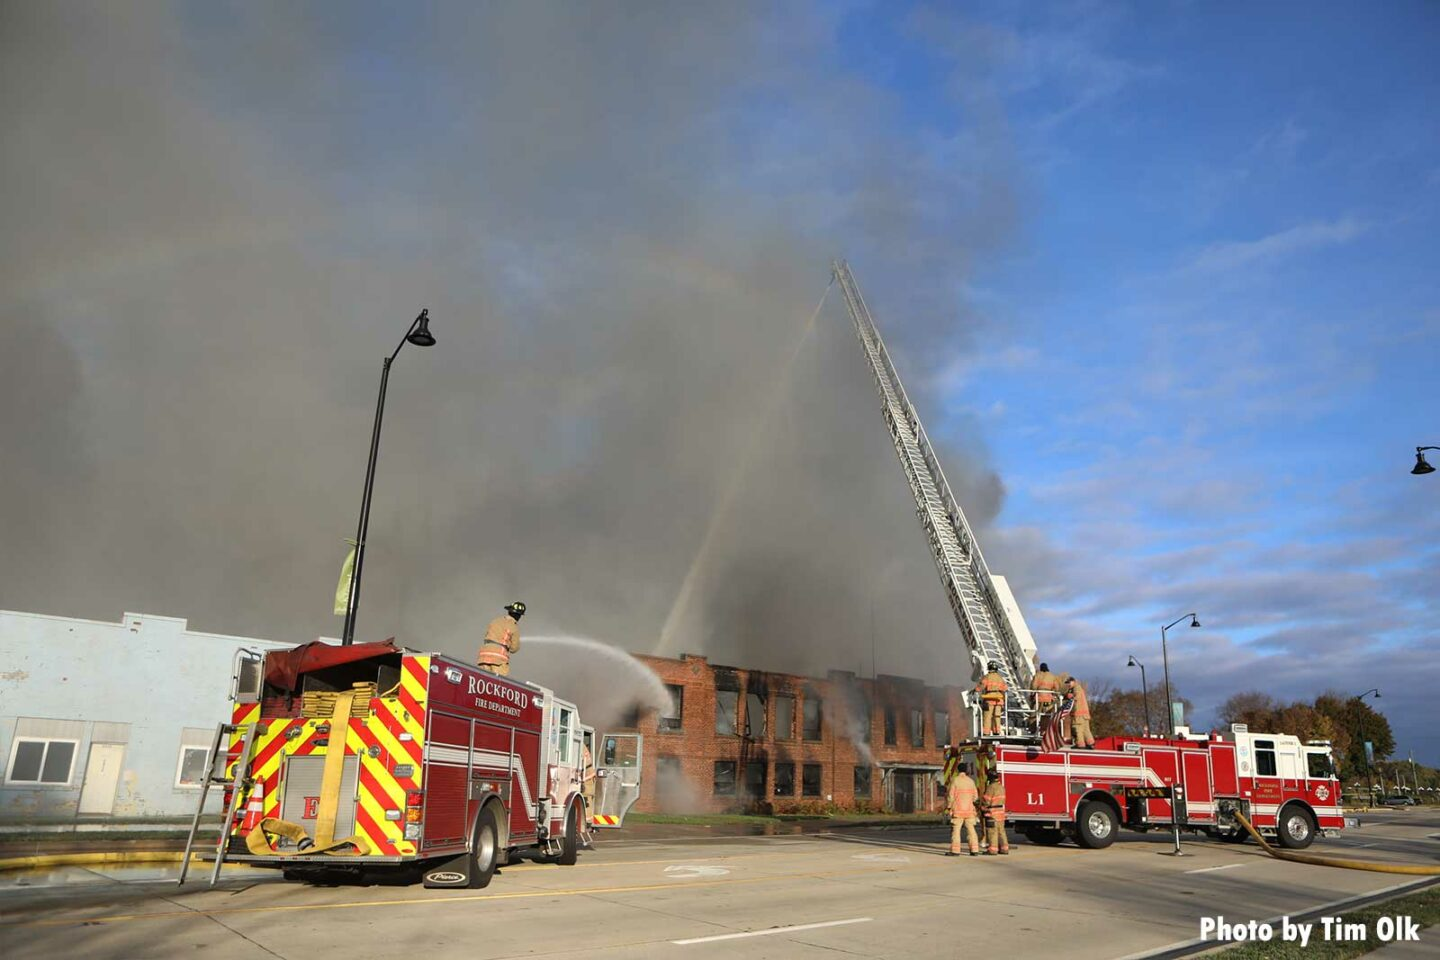 Two apparatus blasting water into abandoned Rockland building